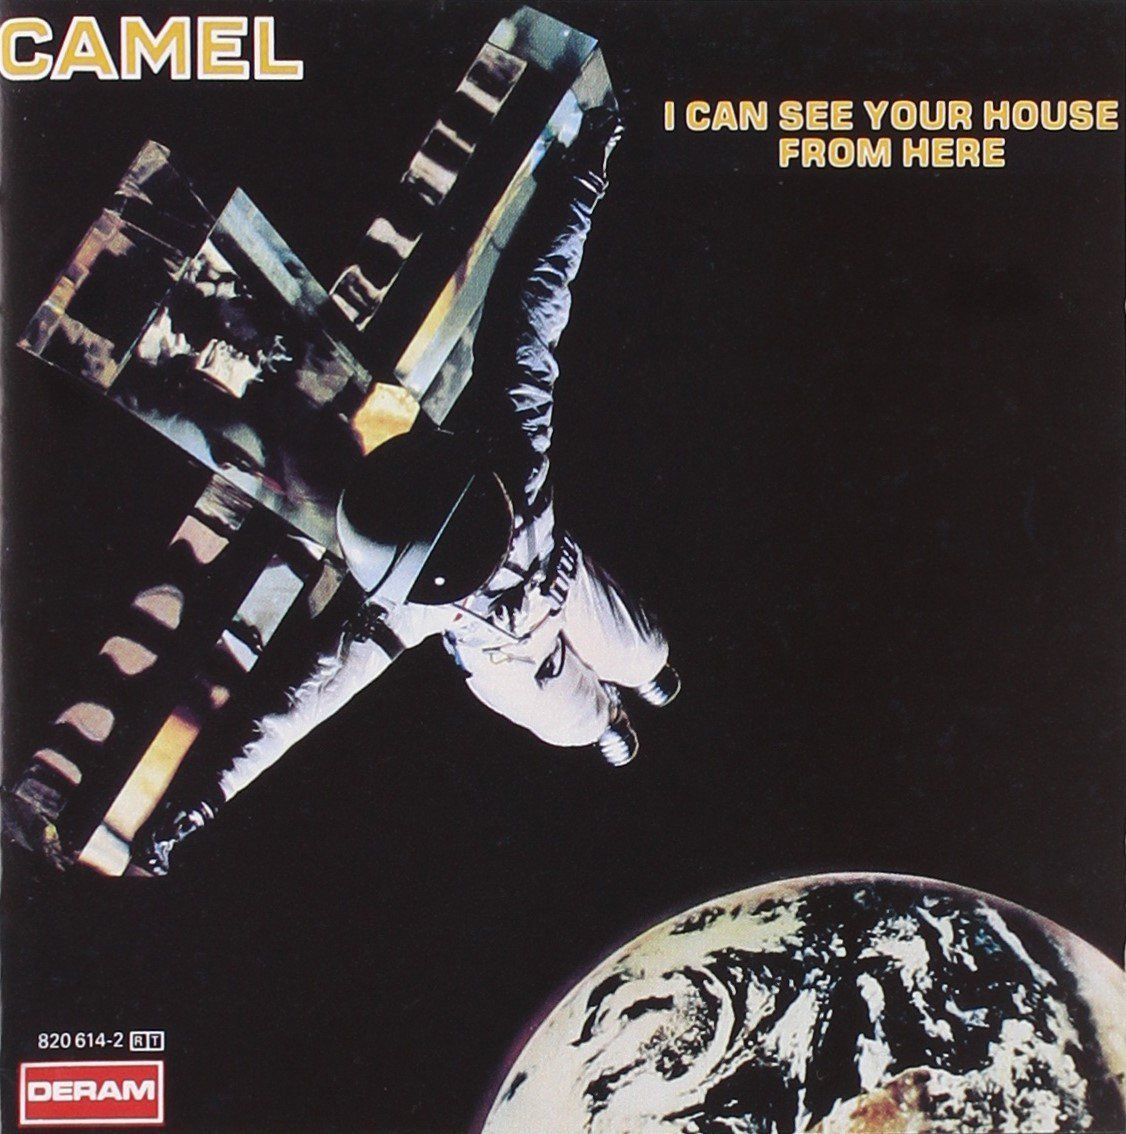 I Can See Your House From Here by Camel: Amazon.co.uk: Music